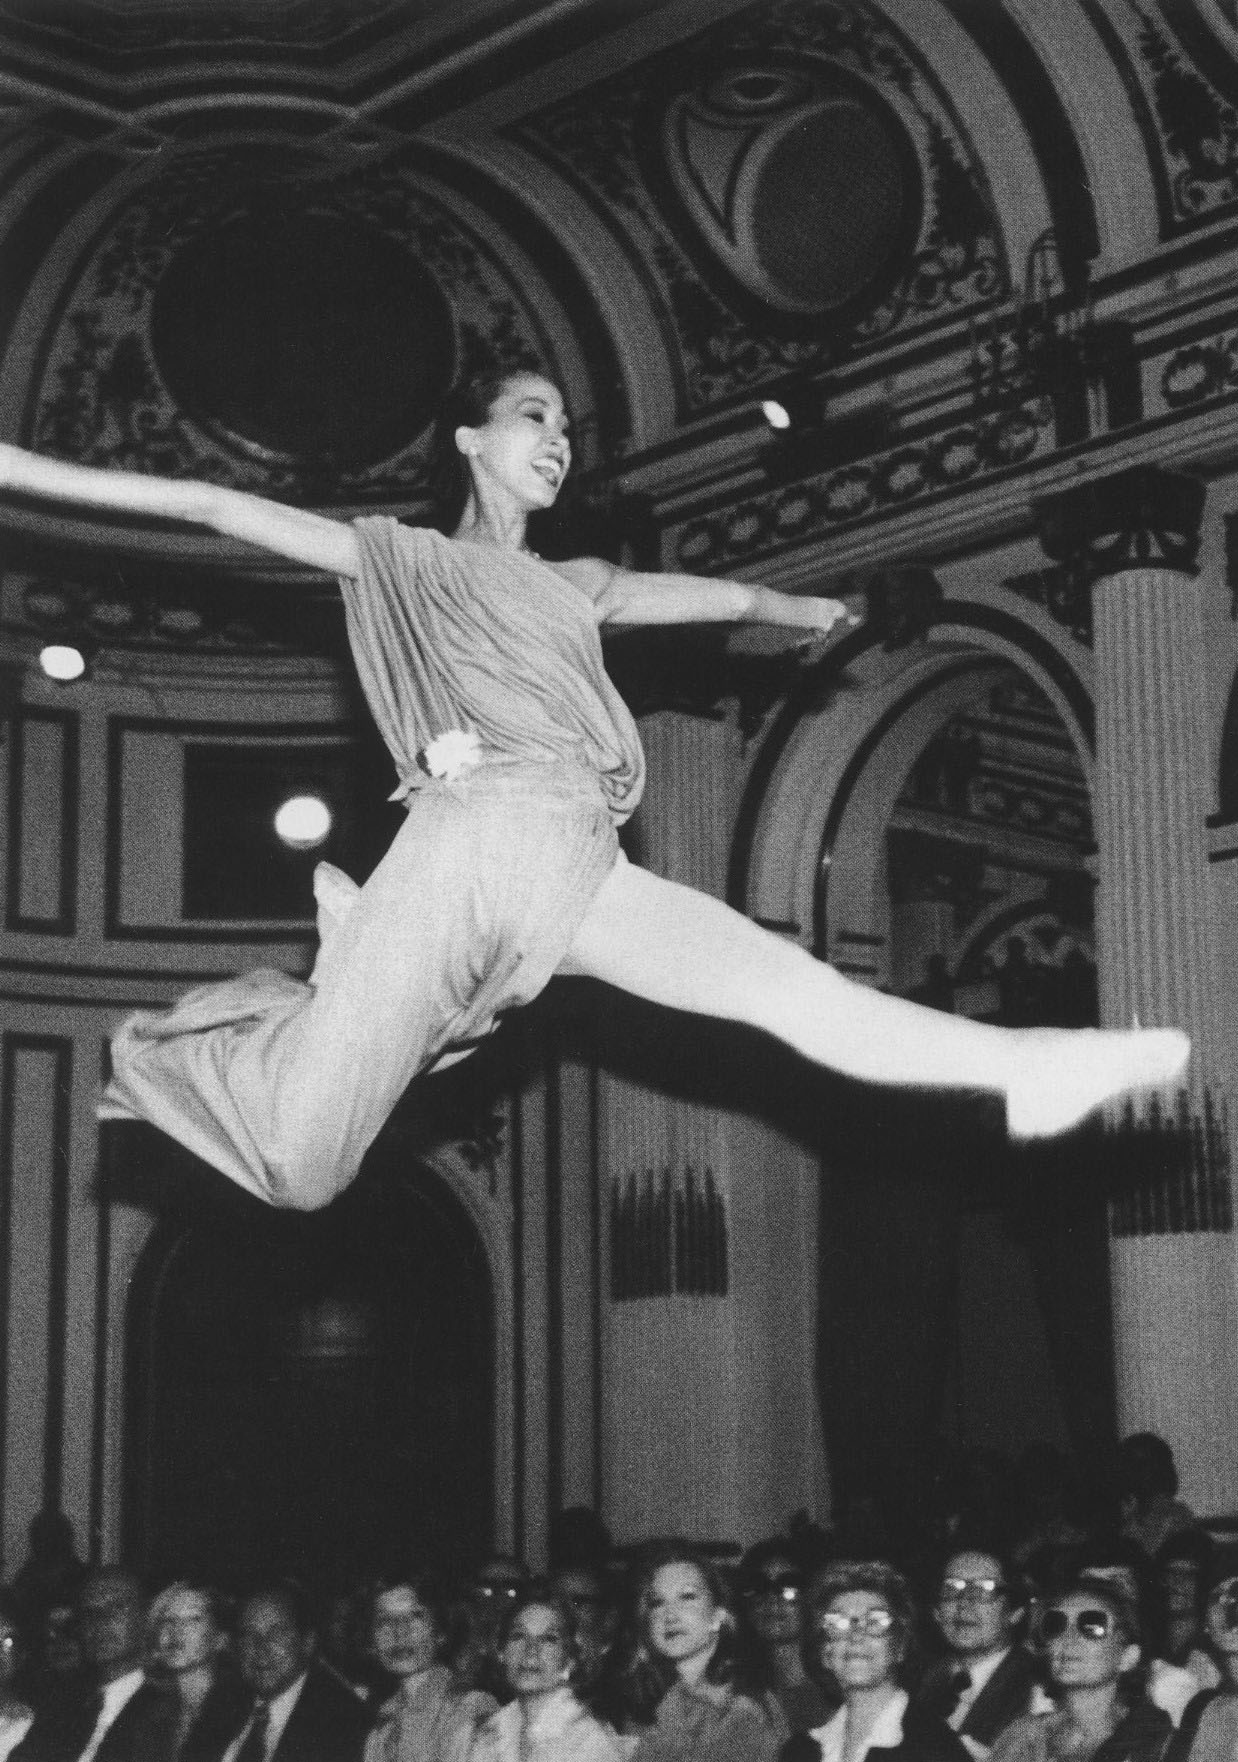 PAT CLEVELAND ON THE NEW YORK CATWALK | 1977 | PHOTOGRAPHY ROXANNE LOWIT